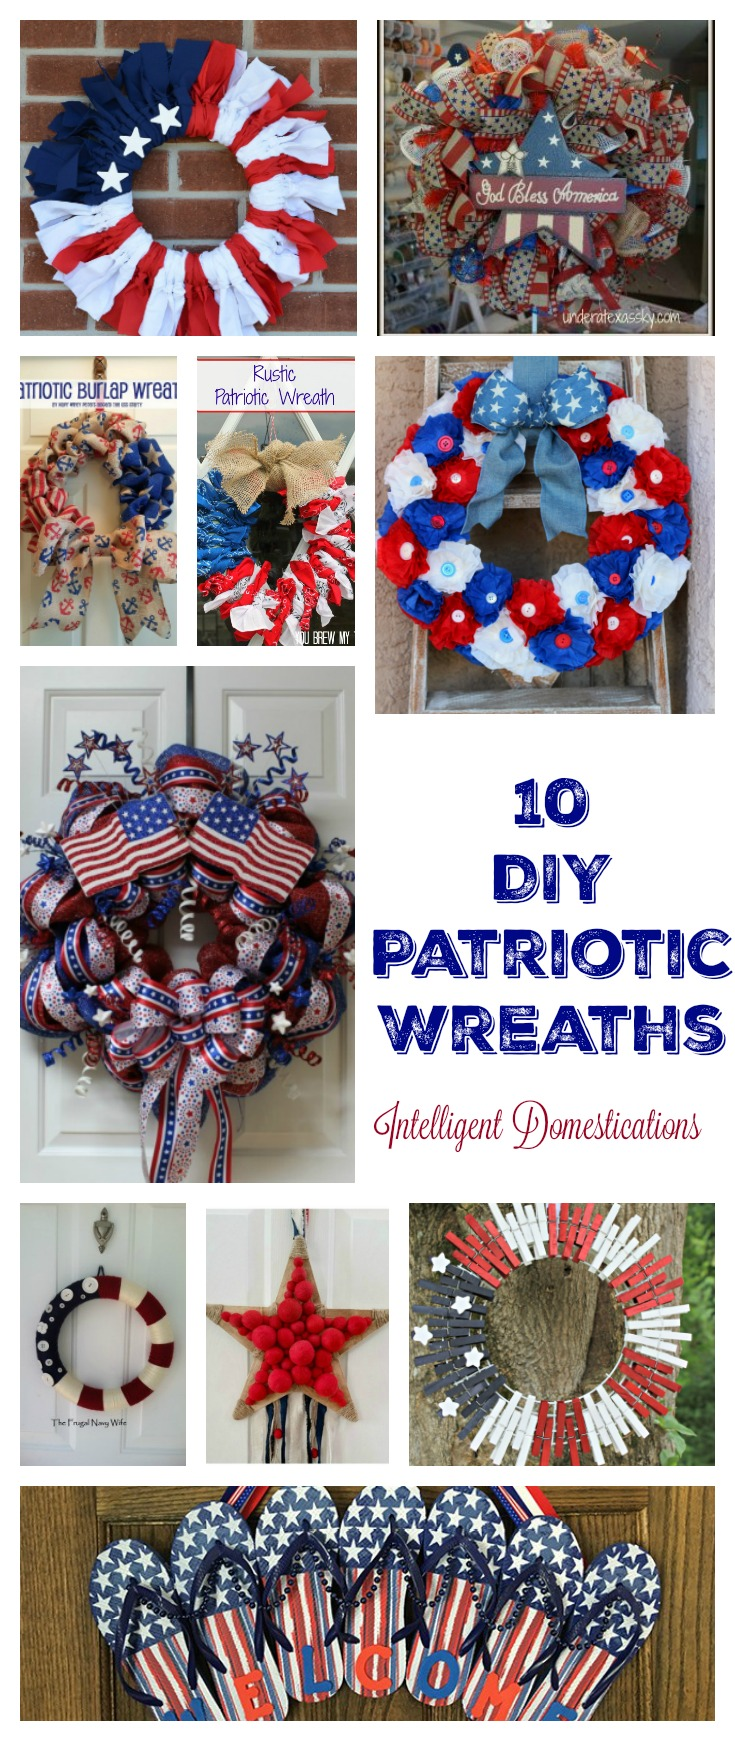 10 DIY Patriotic Wreaths anyone can make